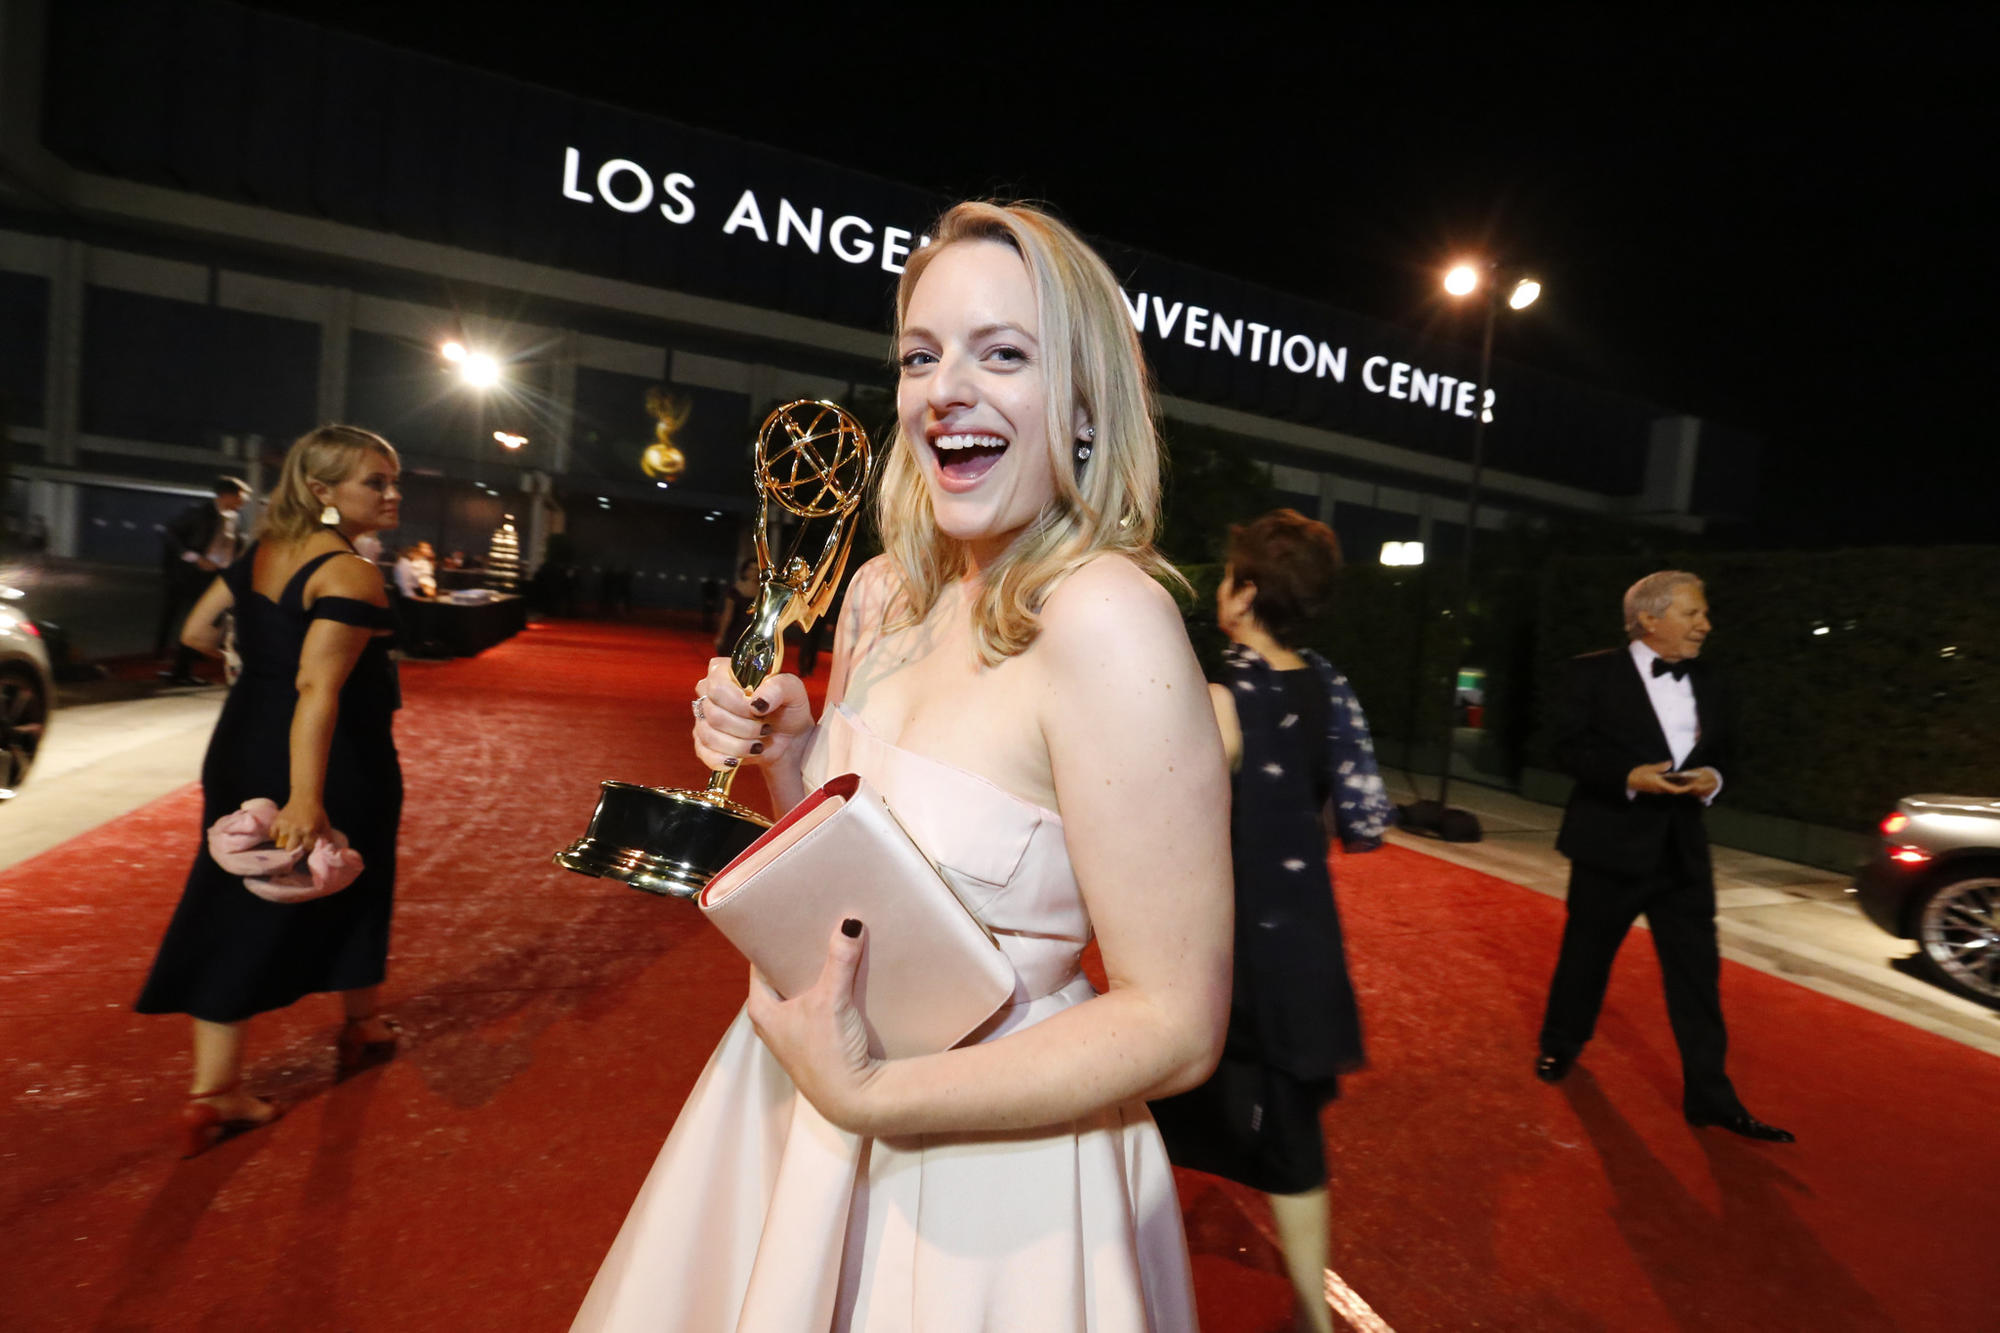 """The Handmaid's Tale's"" Elisabeth Moss holds up her Emmy Awards out side the Los Angeles Convention Center. (Al Seib / Los Angeles Times)"